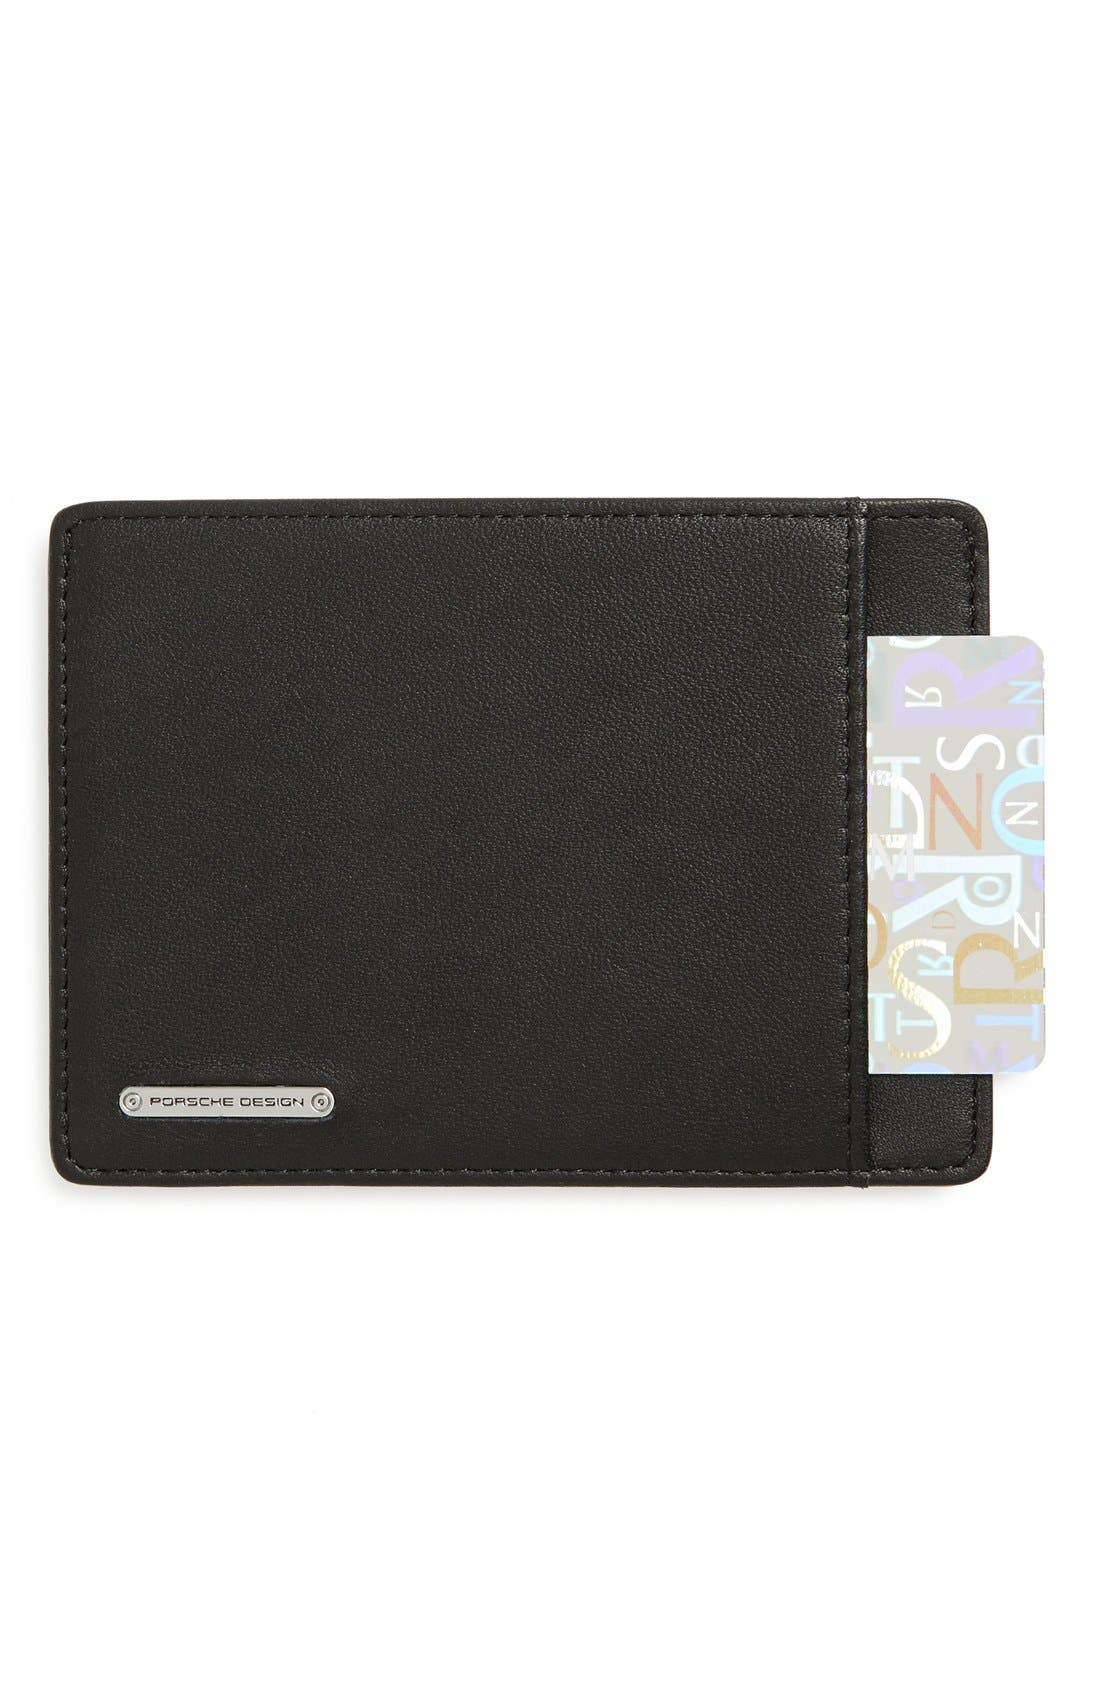 PORSCHE DESIGN CL2 2.0 Leather Card Holder